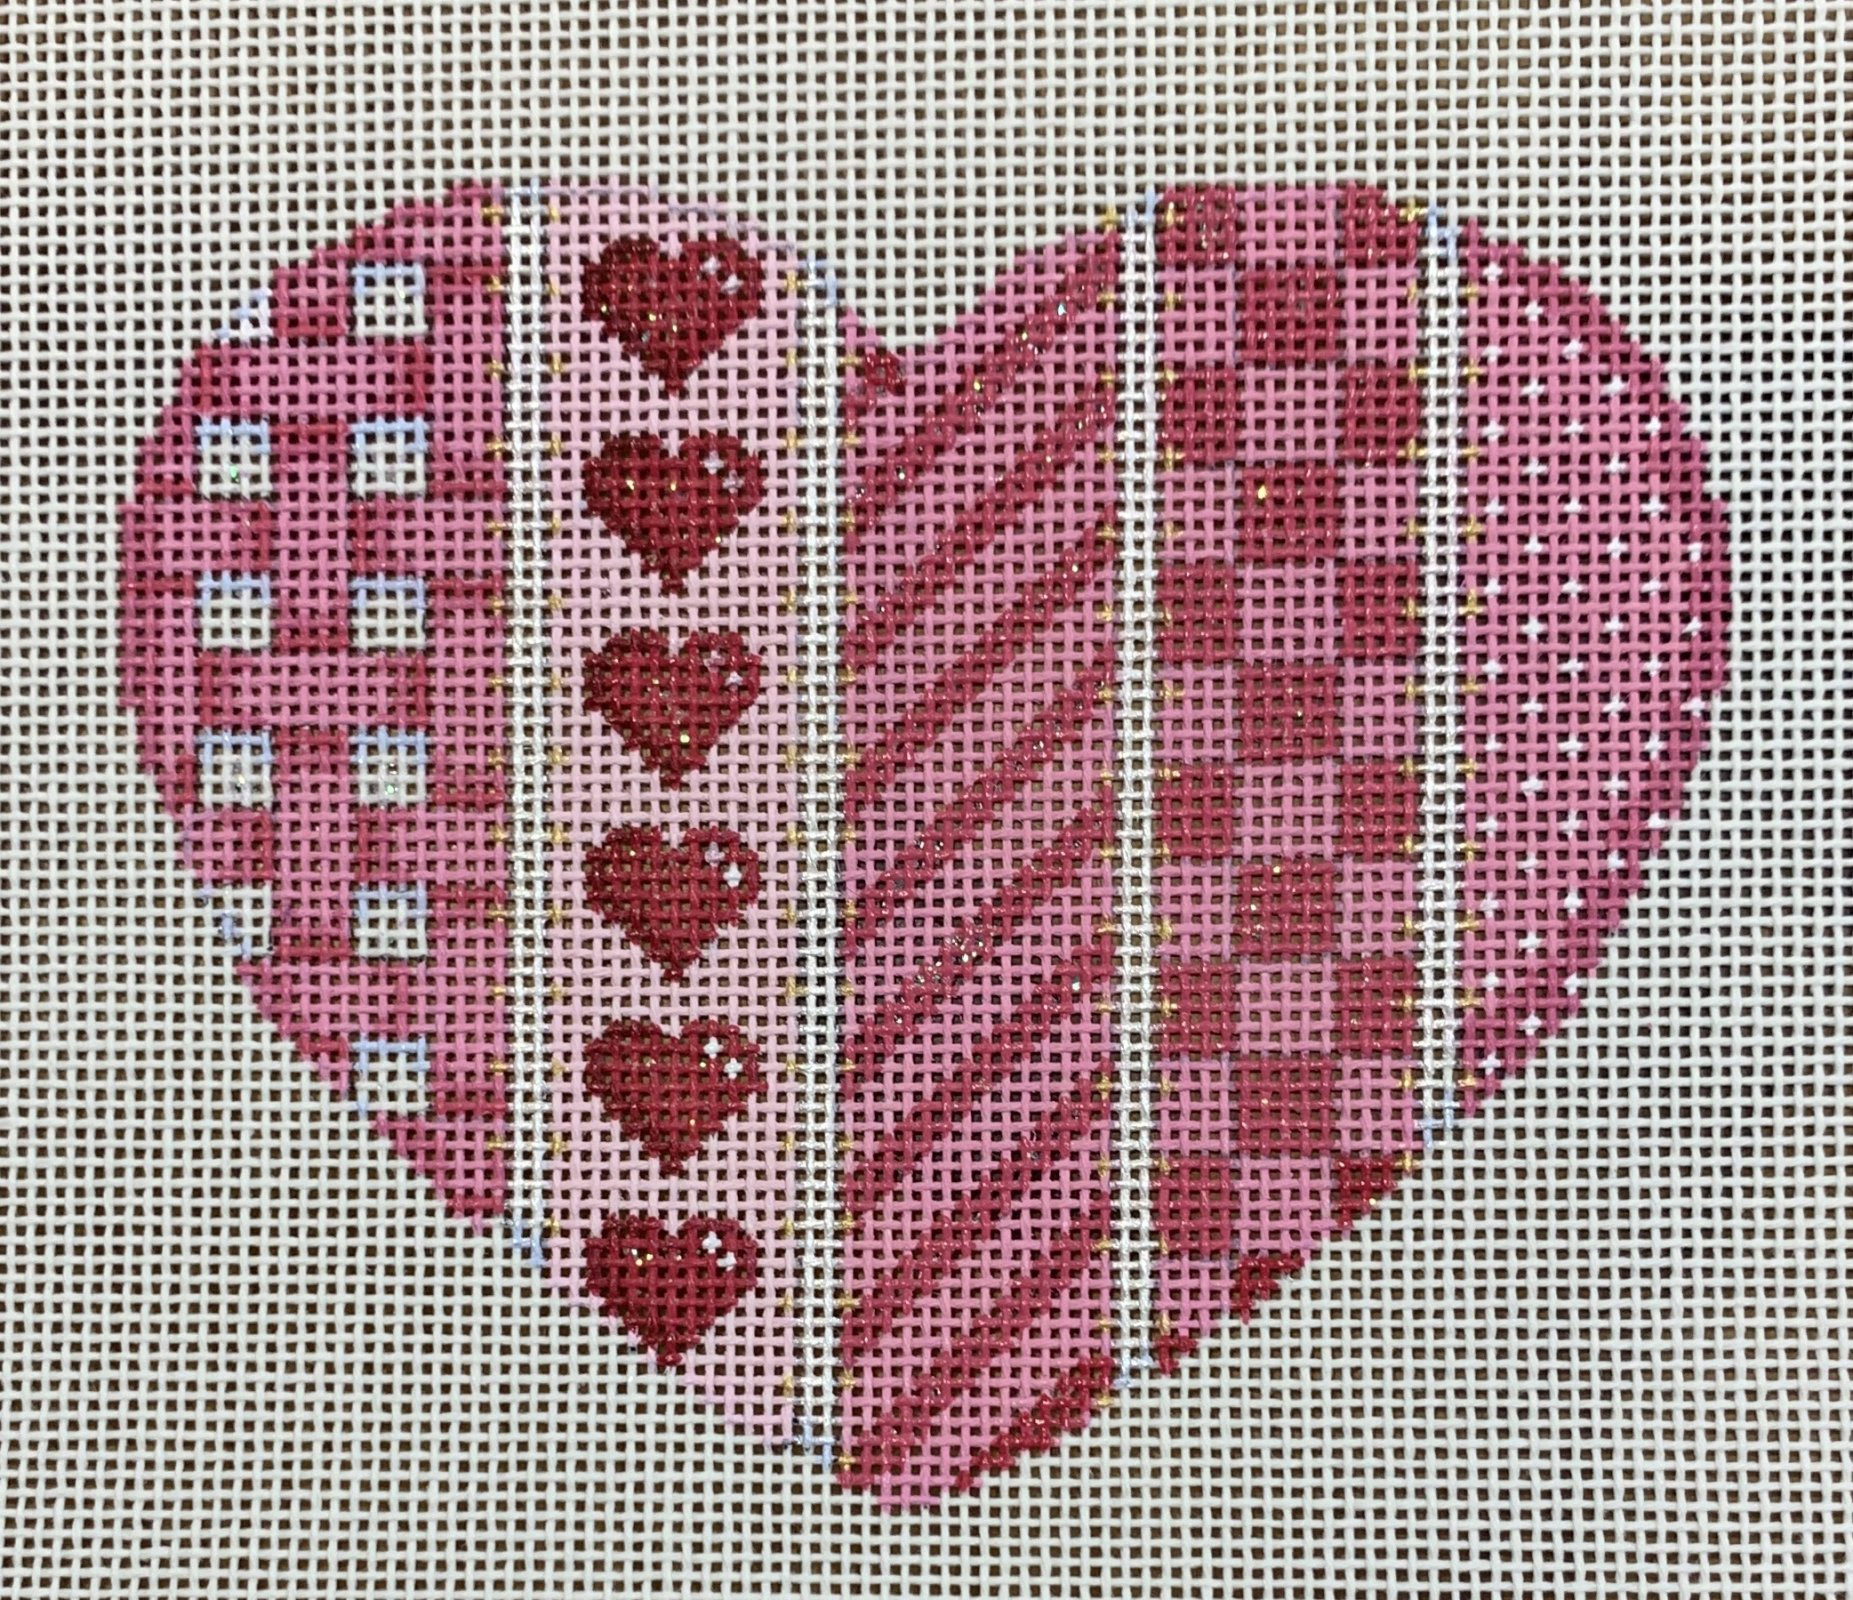 ATTSHE1006 Woven/Hearts/Diag/Checks Lg. Heart  4.75x4  18